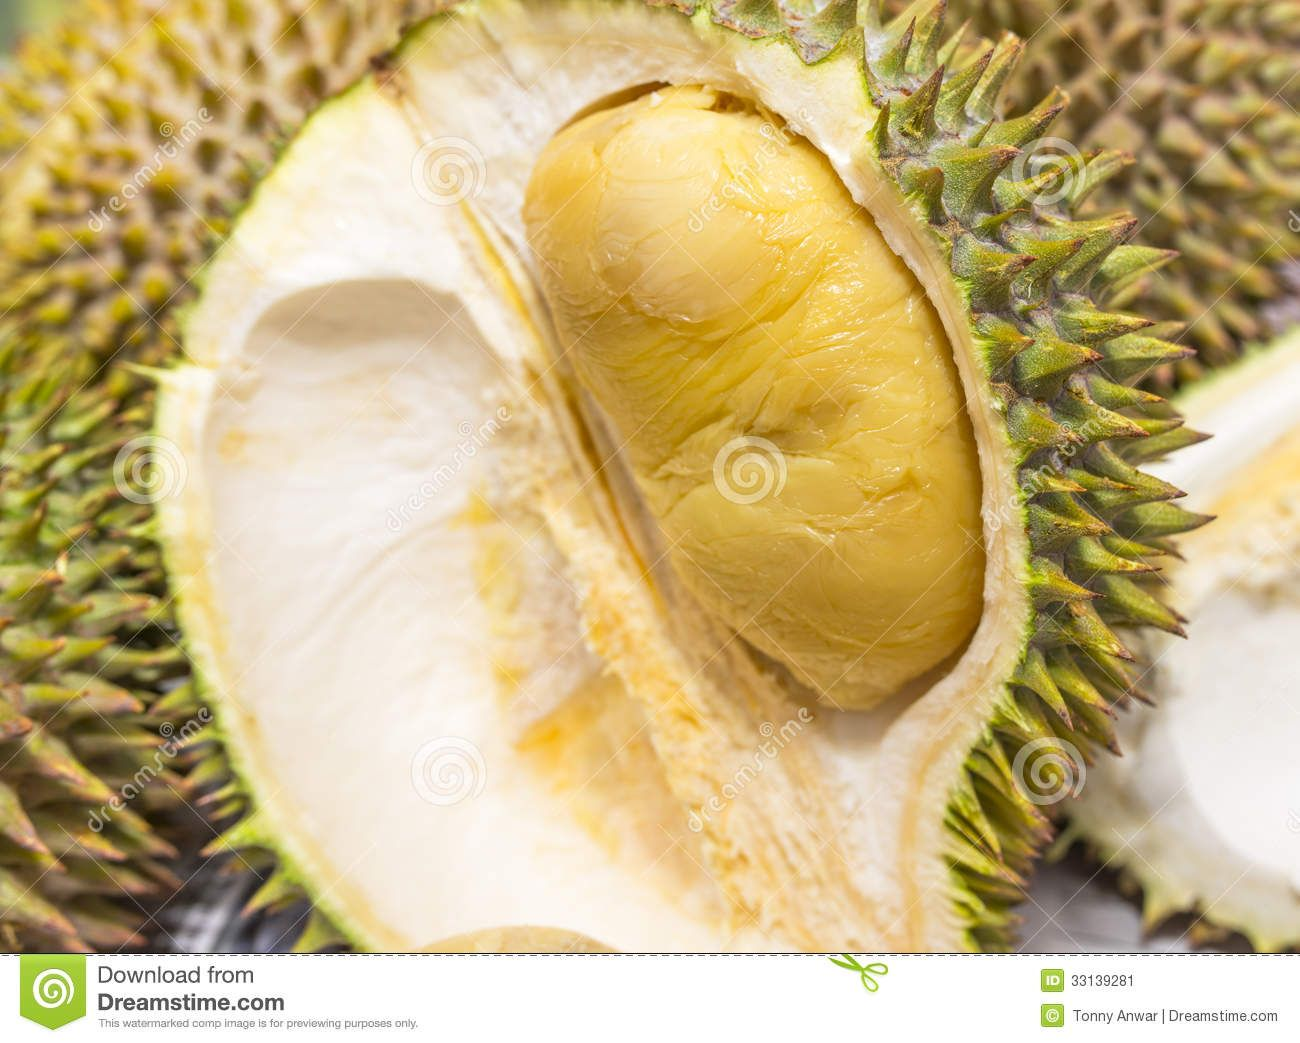 How to pick and eat durian fruit the washington post - Exoitc Fruits Of Asia Ripe Tropical Durian Fruit Of Asia